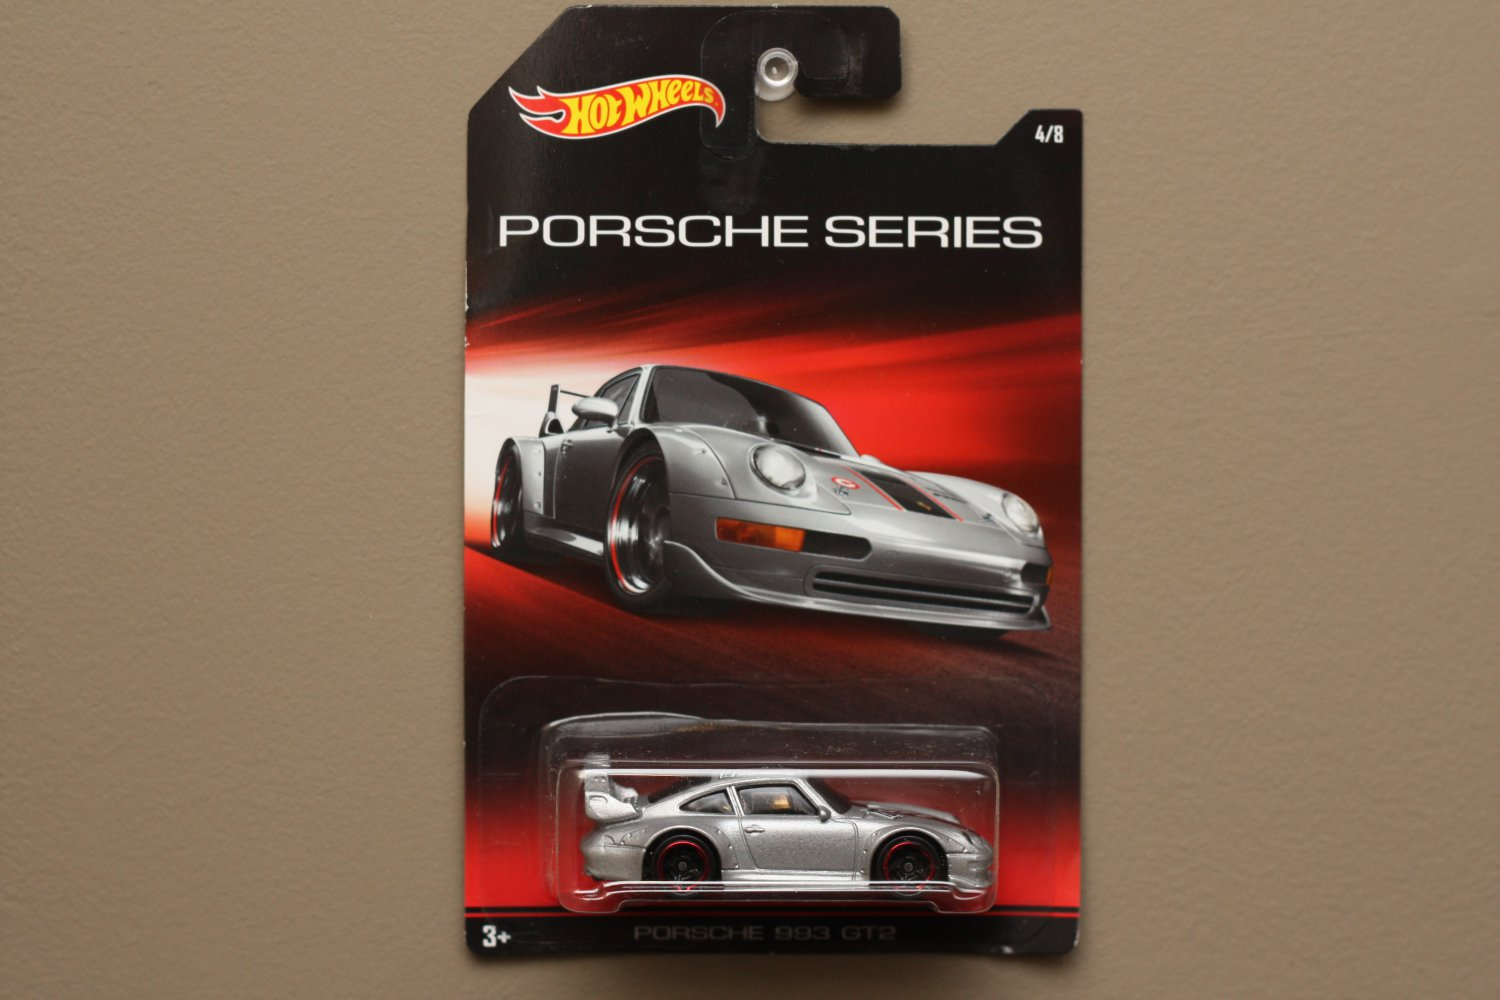 hot wheels 2015 porsche series porsche 993 gt2 grey. Black Bedroom Furniture Sets. Home Design Ideas